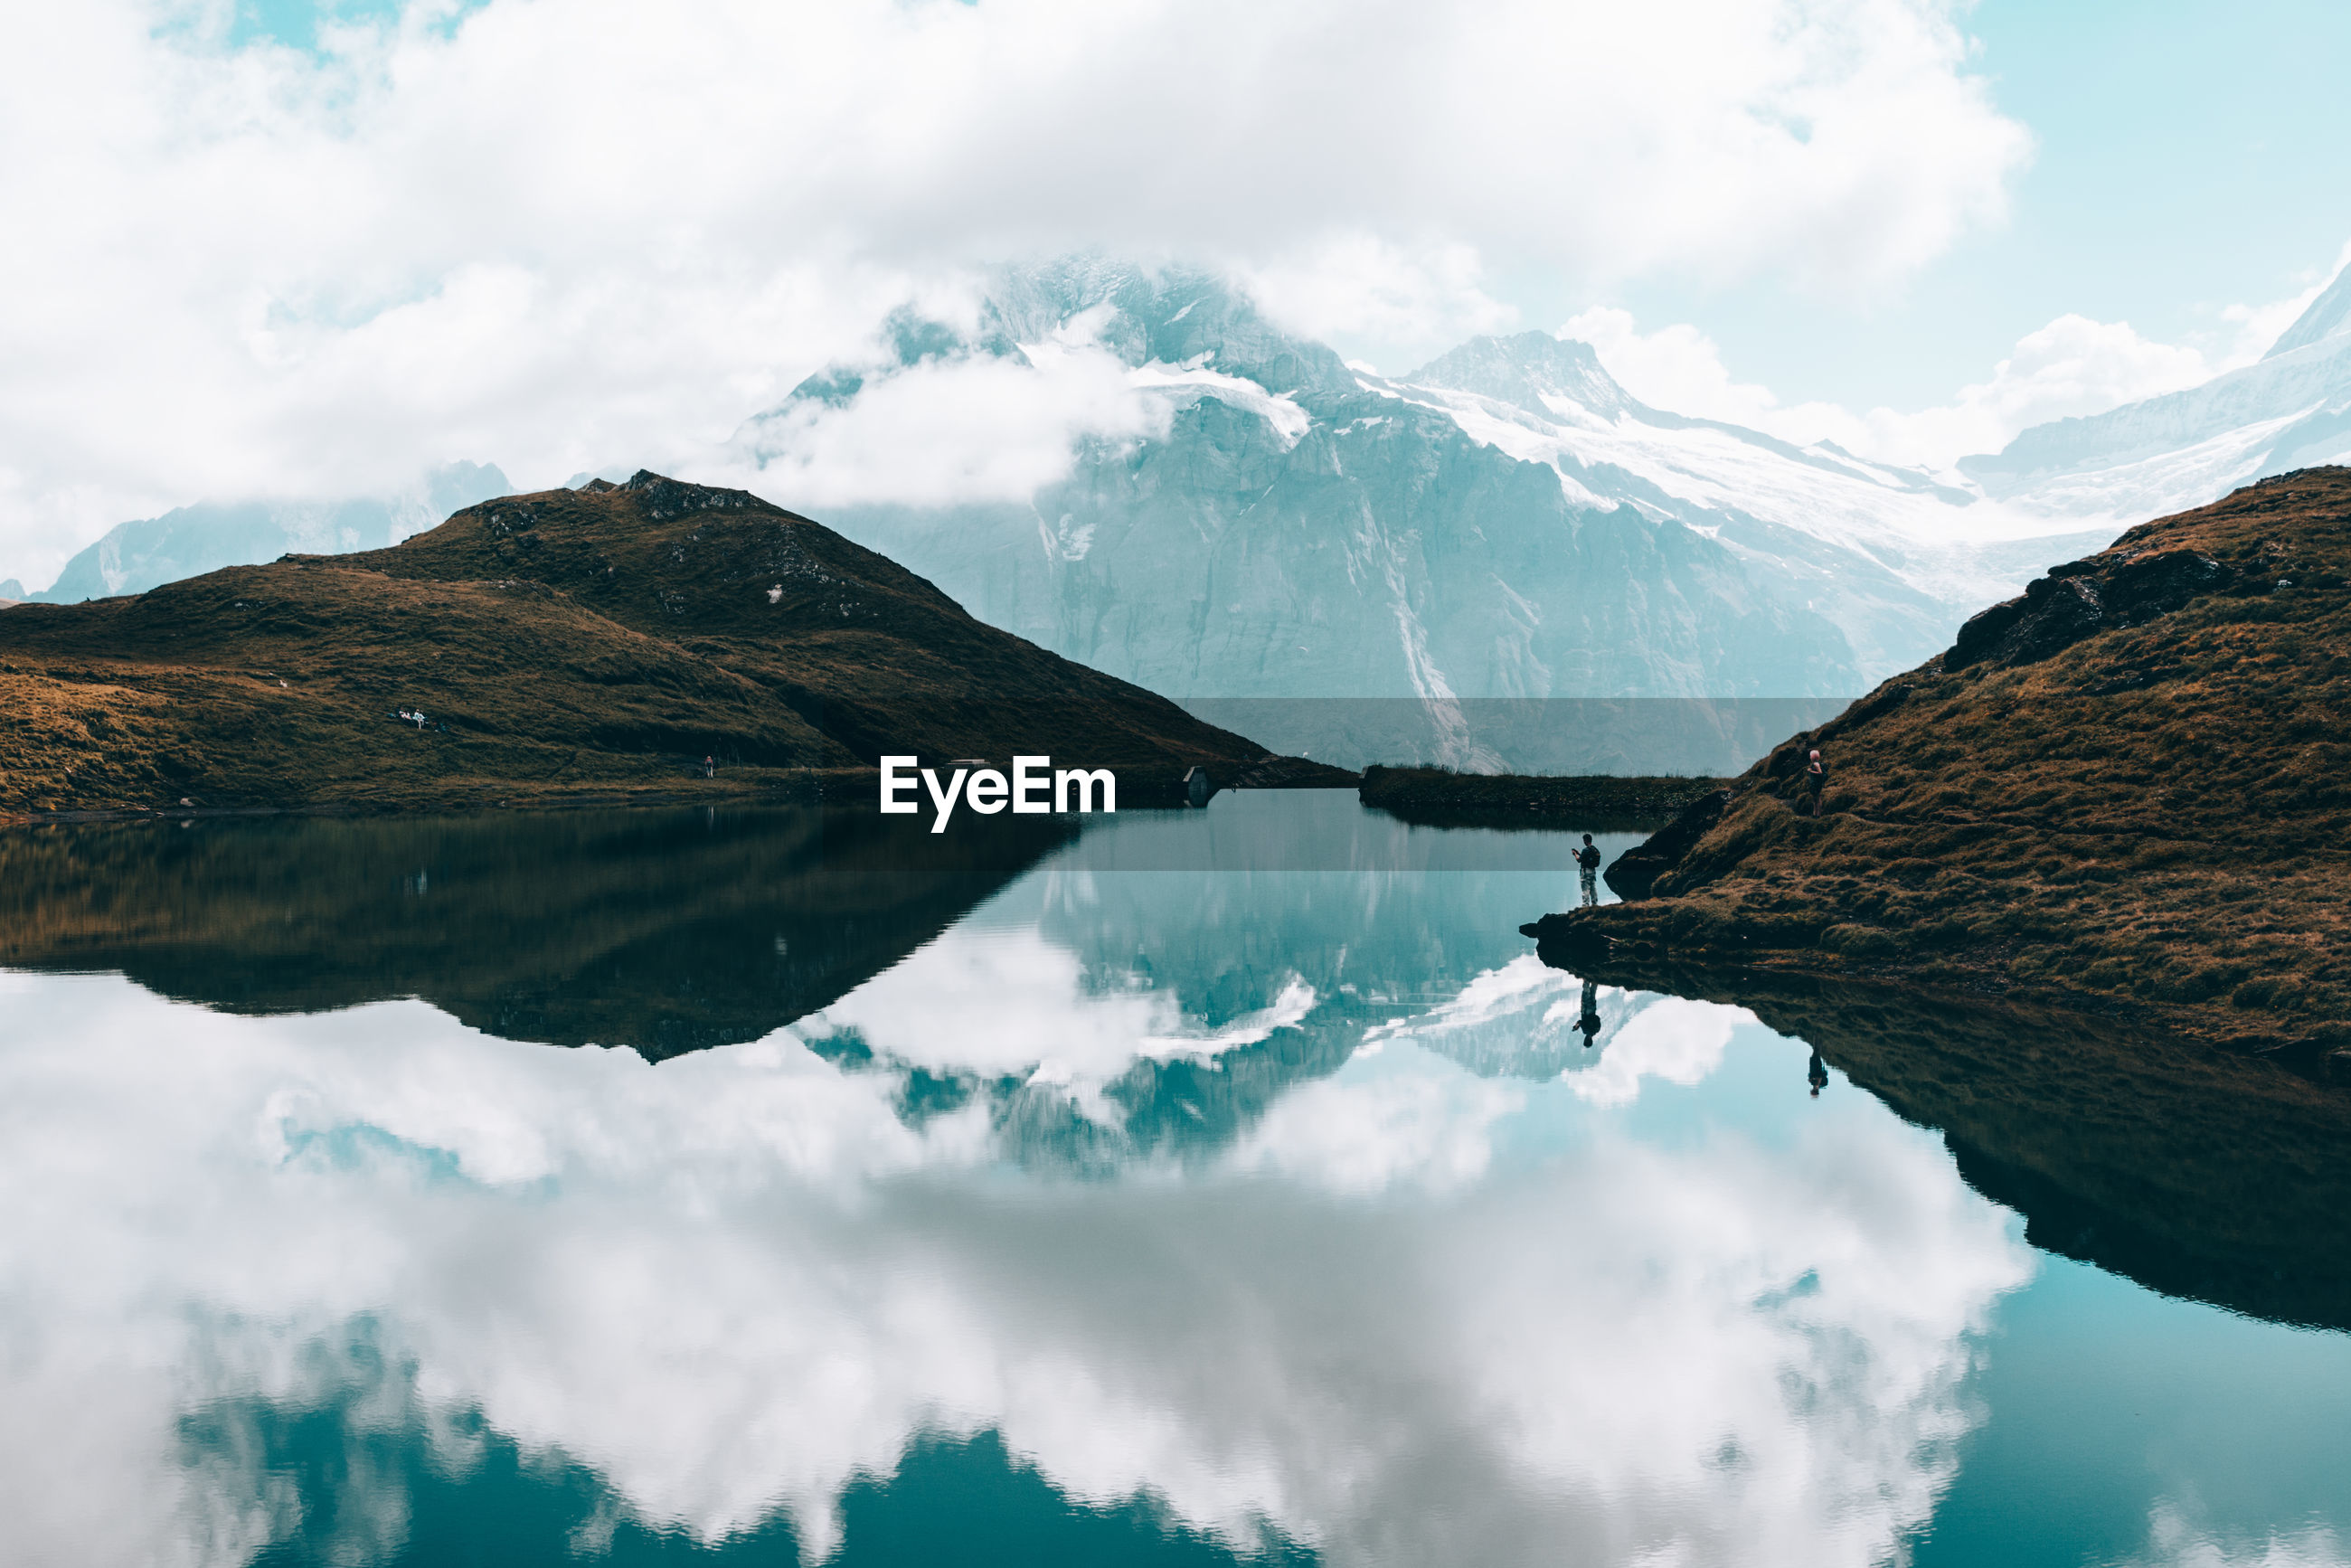 Panoramic view of calm lake surrounded by mountains against cloudy sky